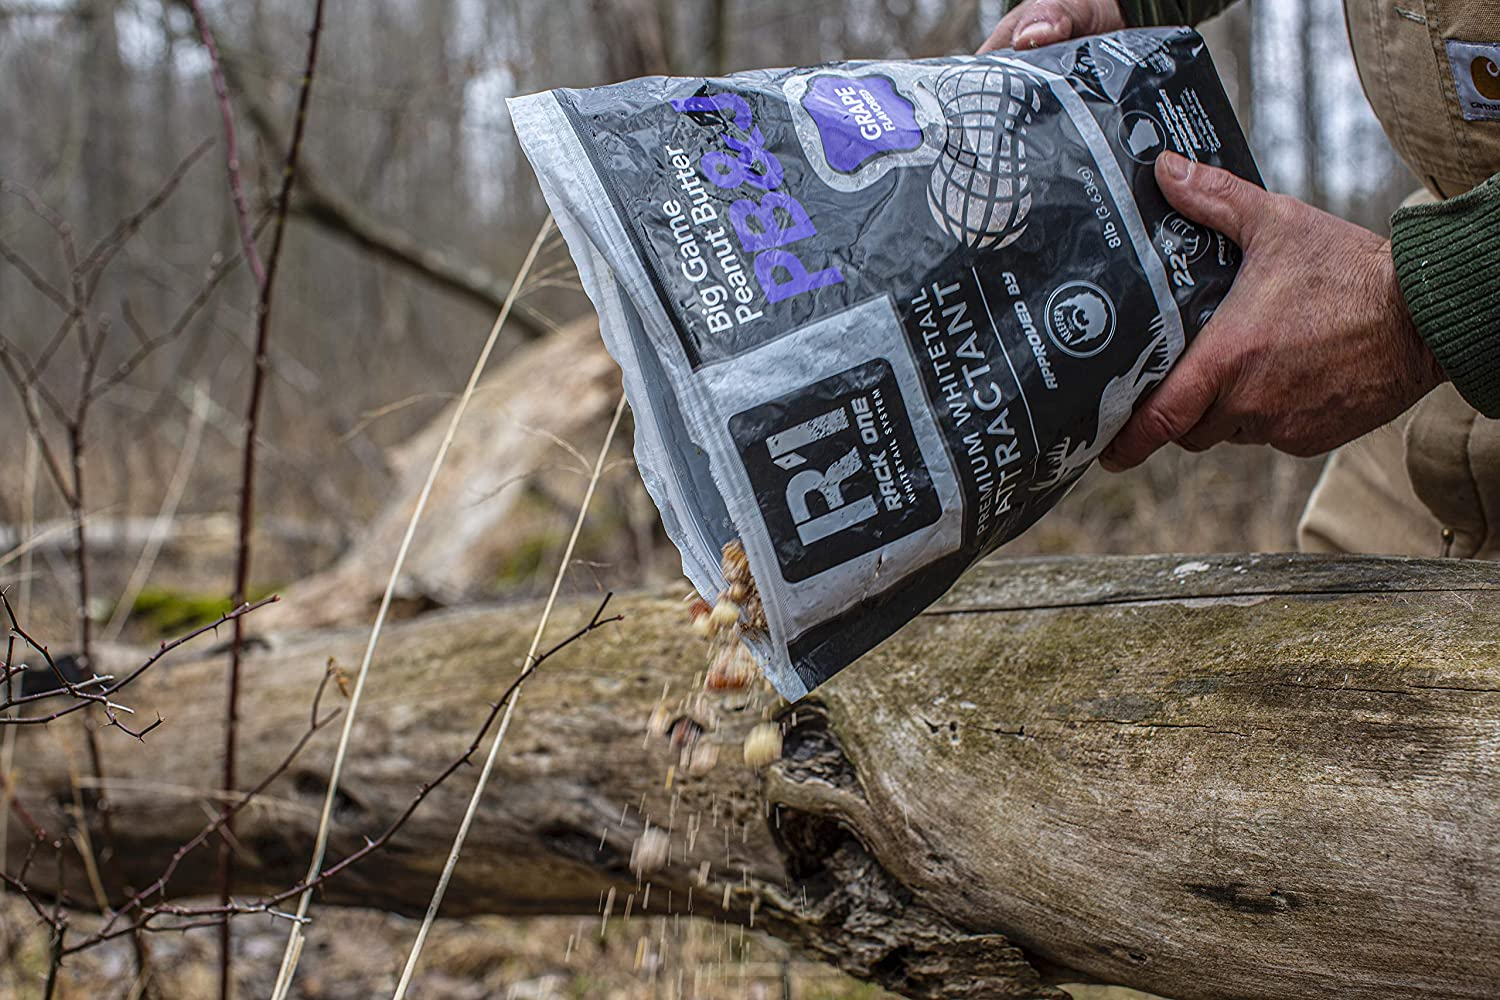 Grape Flavor 5 Lb Bags 3 Pack Deer Feed Protein Supplement 100/% Shelled Peanuts Rack One Big Game Peanut Butter Premium Whitetail Deer Attractant Works as Bear /& Hog Attractant